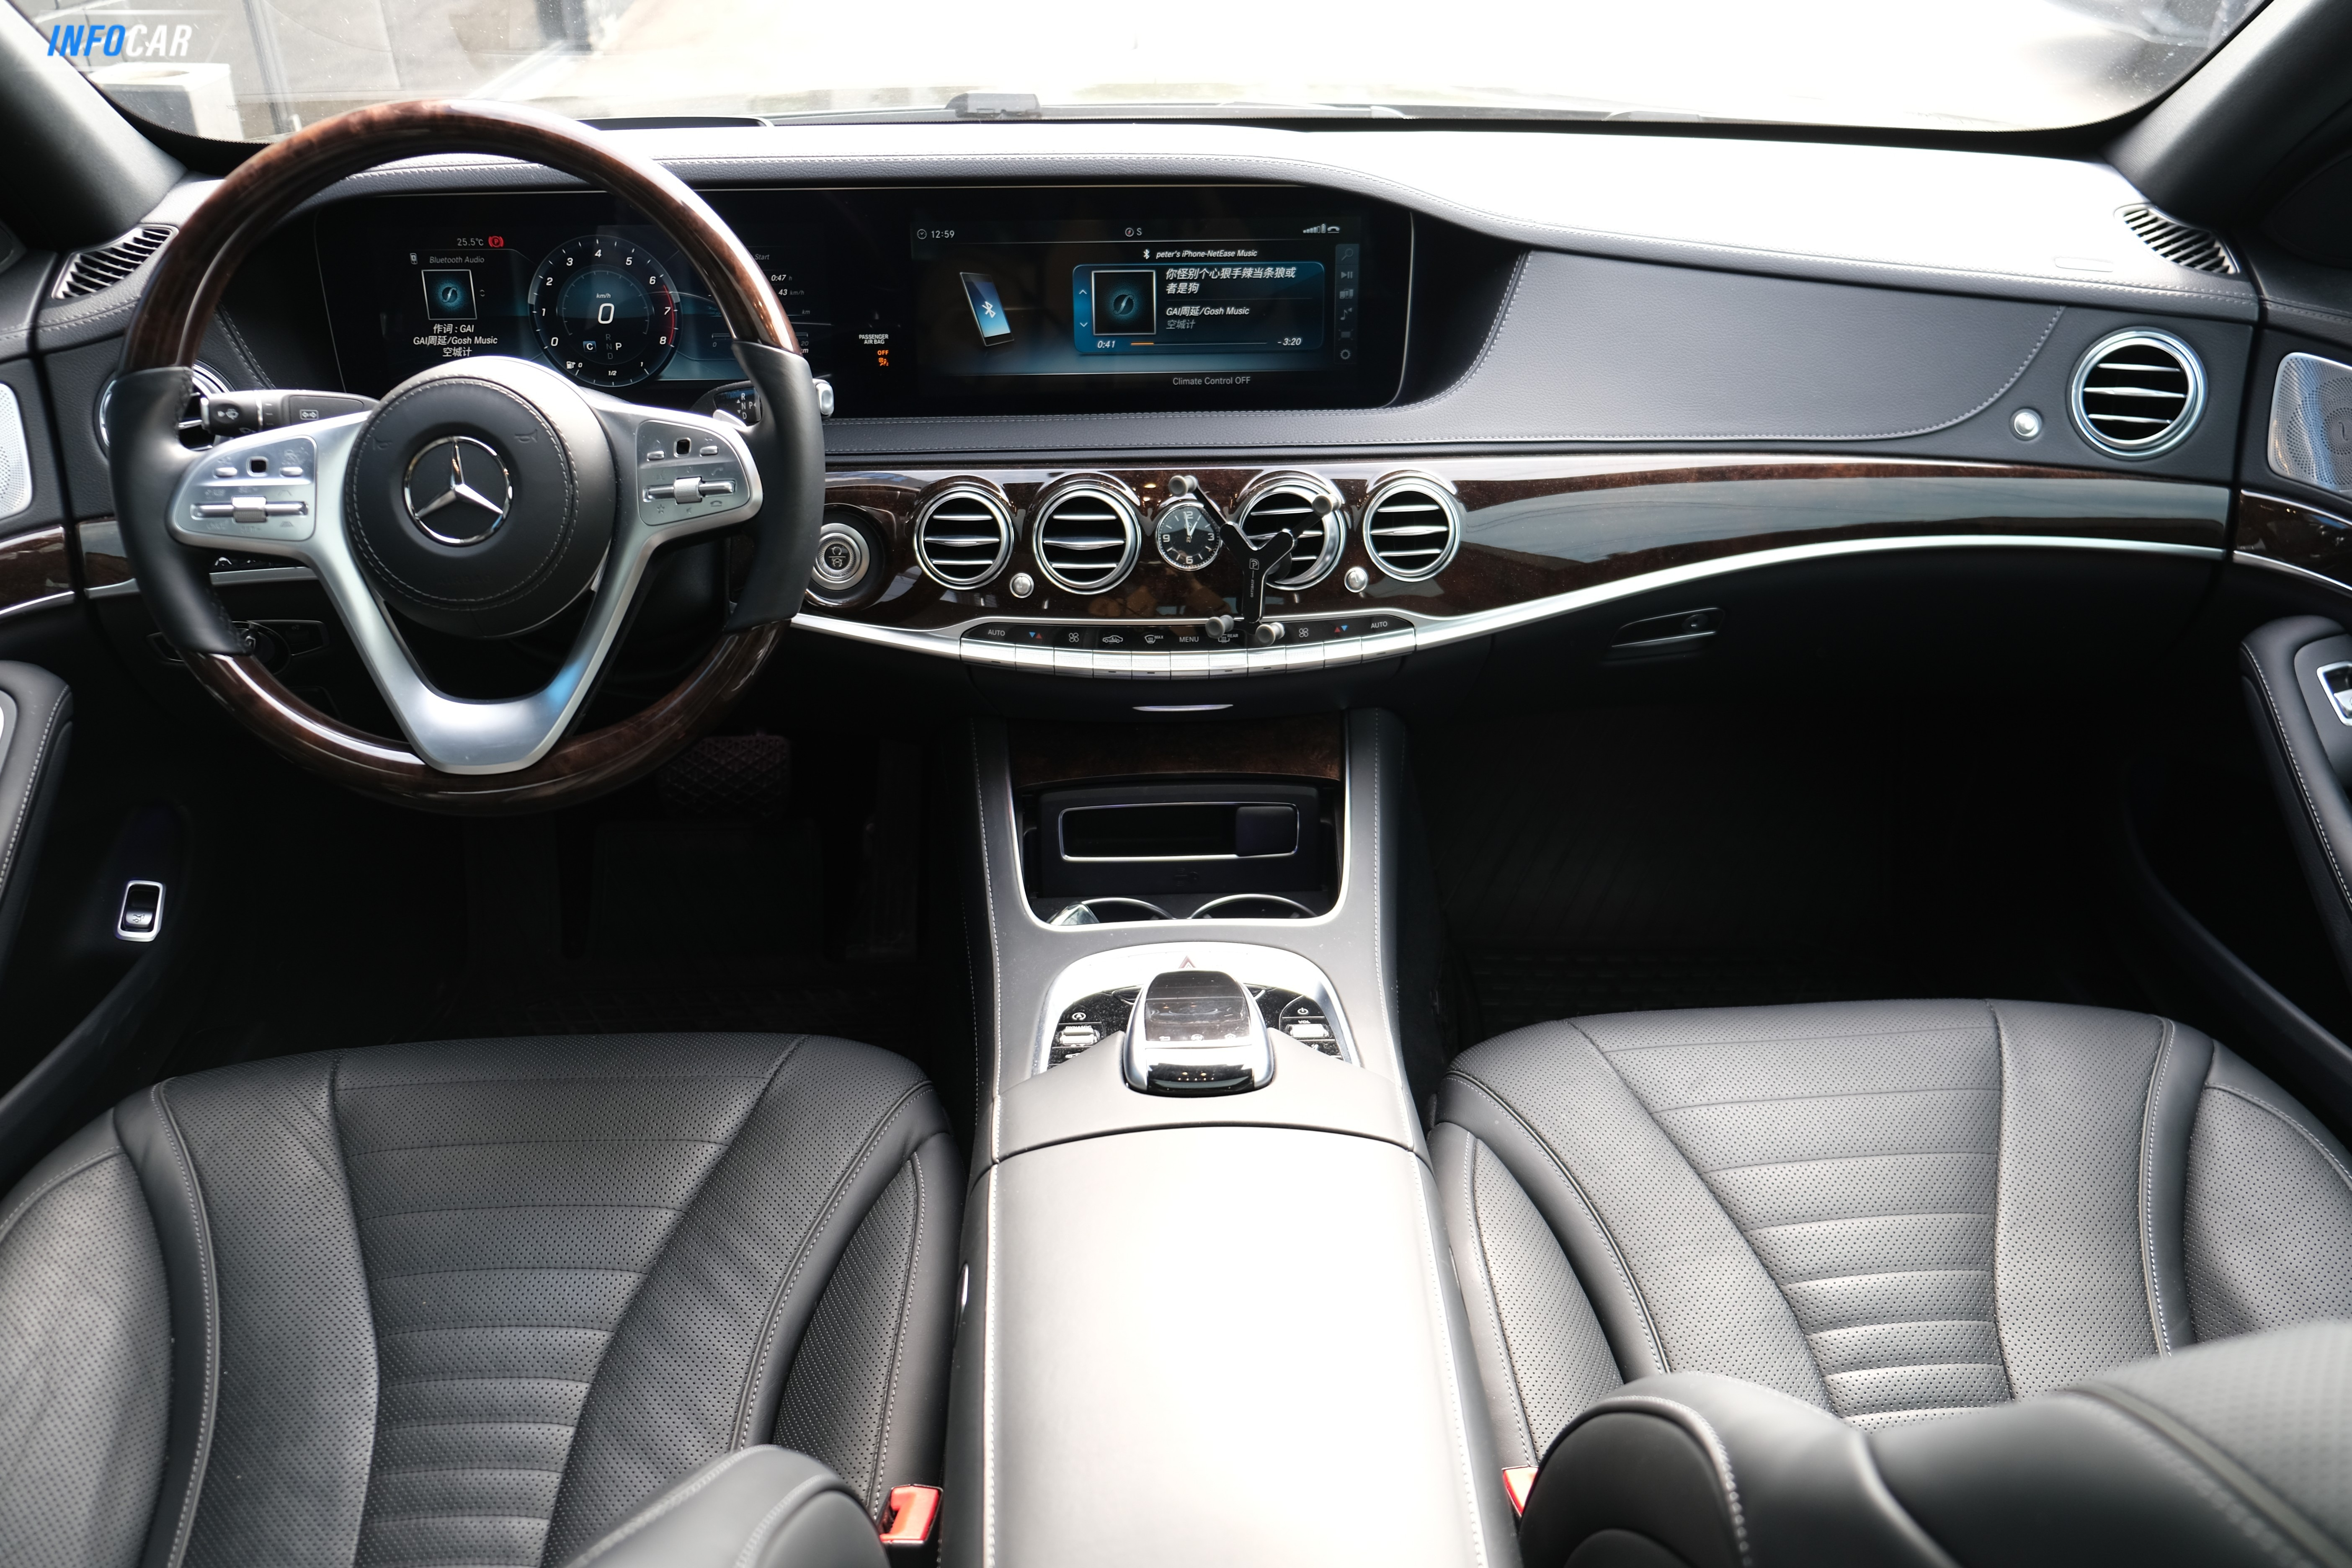 2018 Mercedes-Benz S-Class 560 - INFOCAR - Toronto's Most Comprehensive New and Used Auto Trading Platform